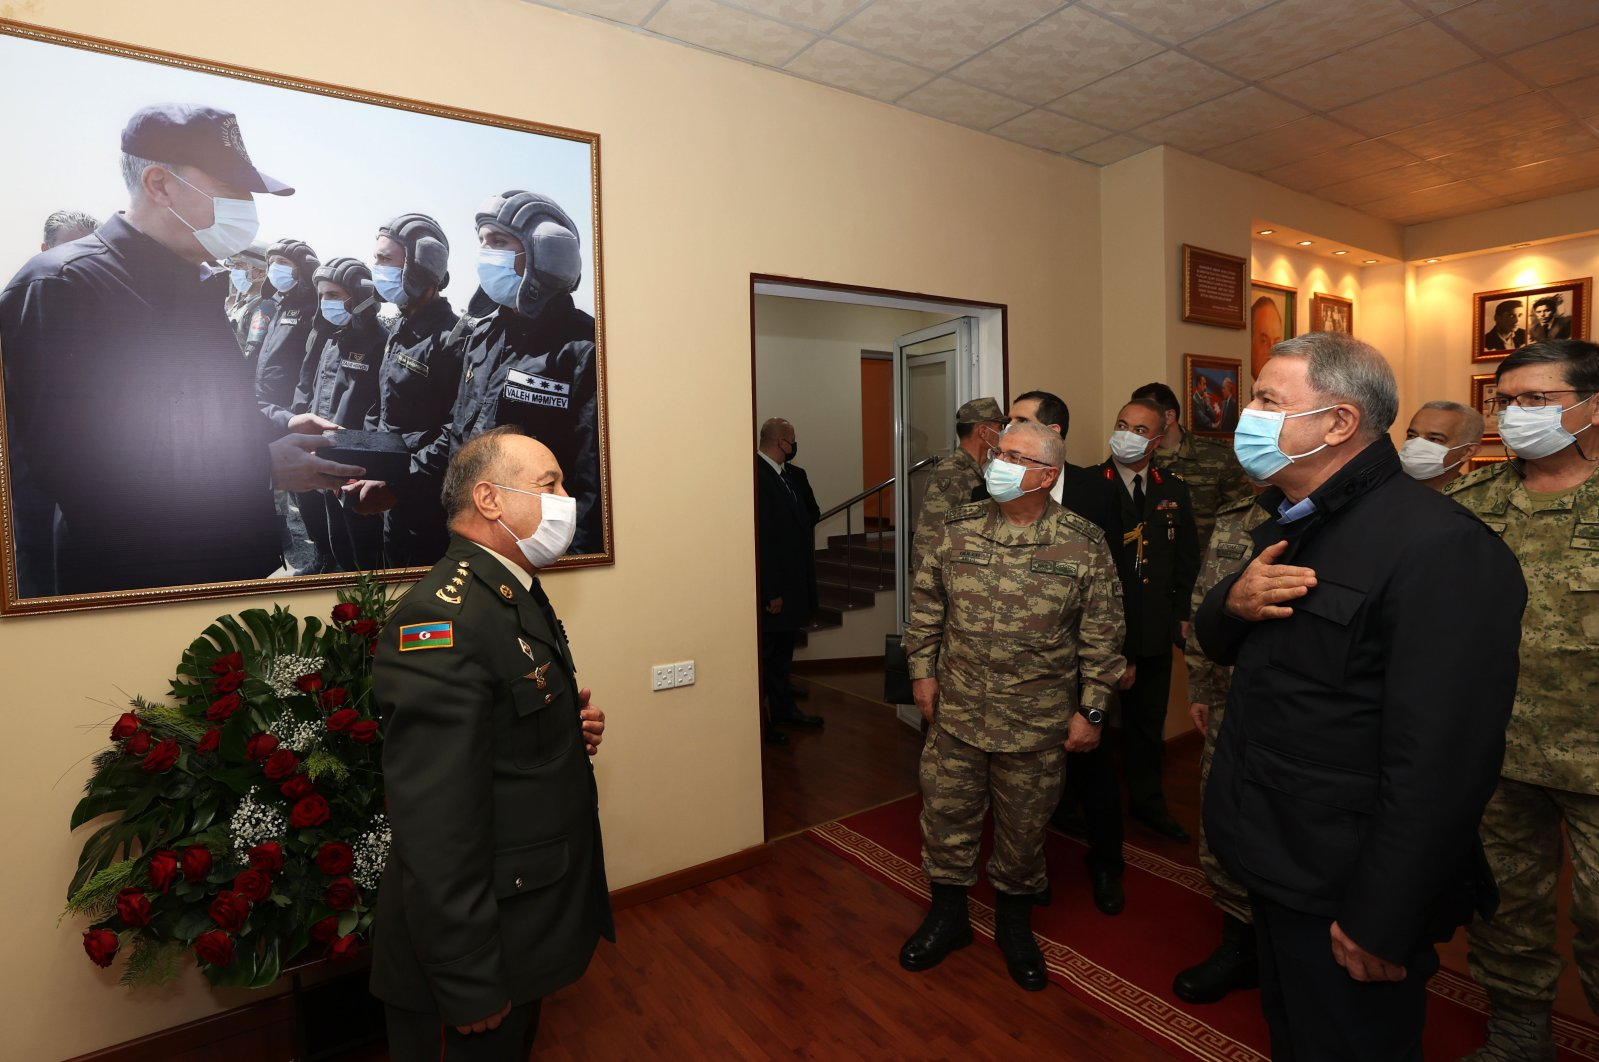 Turkish Defense Minister Hulusi Akar (R) looks at a picture of himself with Lt. Valeh Memiyev, who was killed during the recent Karabakh war, in the capital Baku, Azerbaijan, Jan. 3, 2021. (AA Photo)